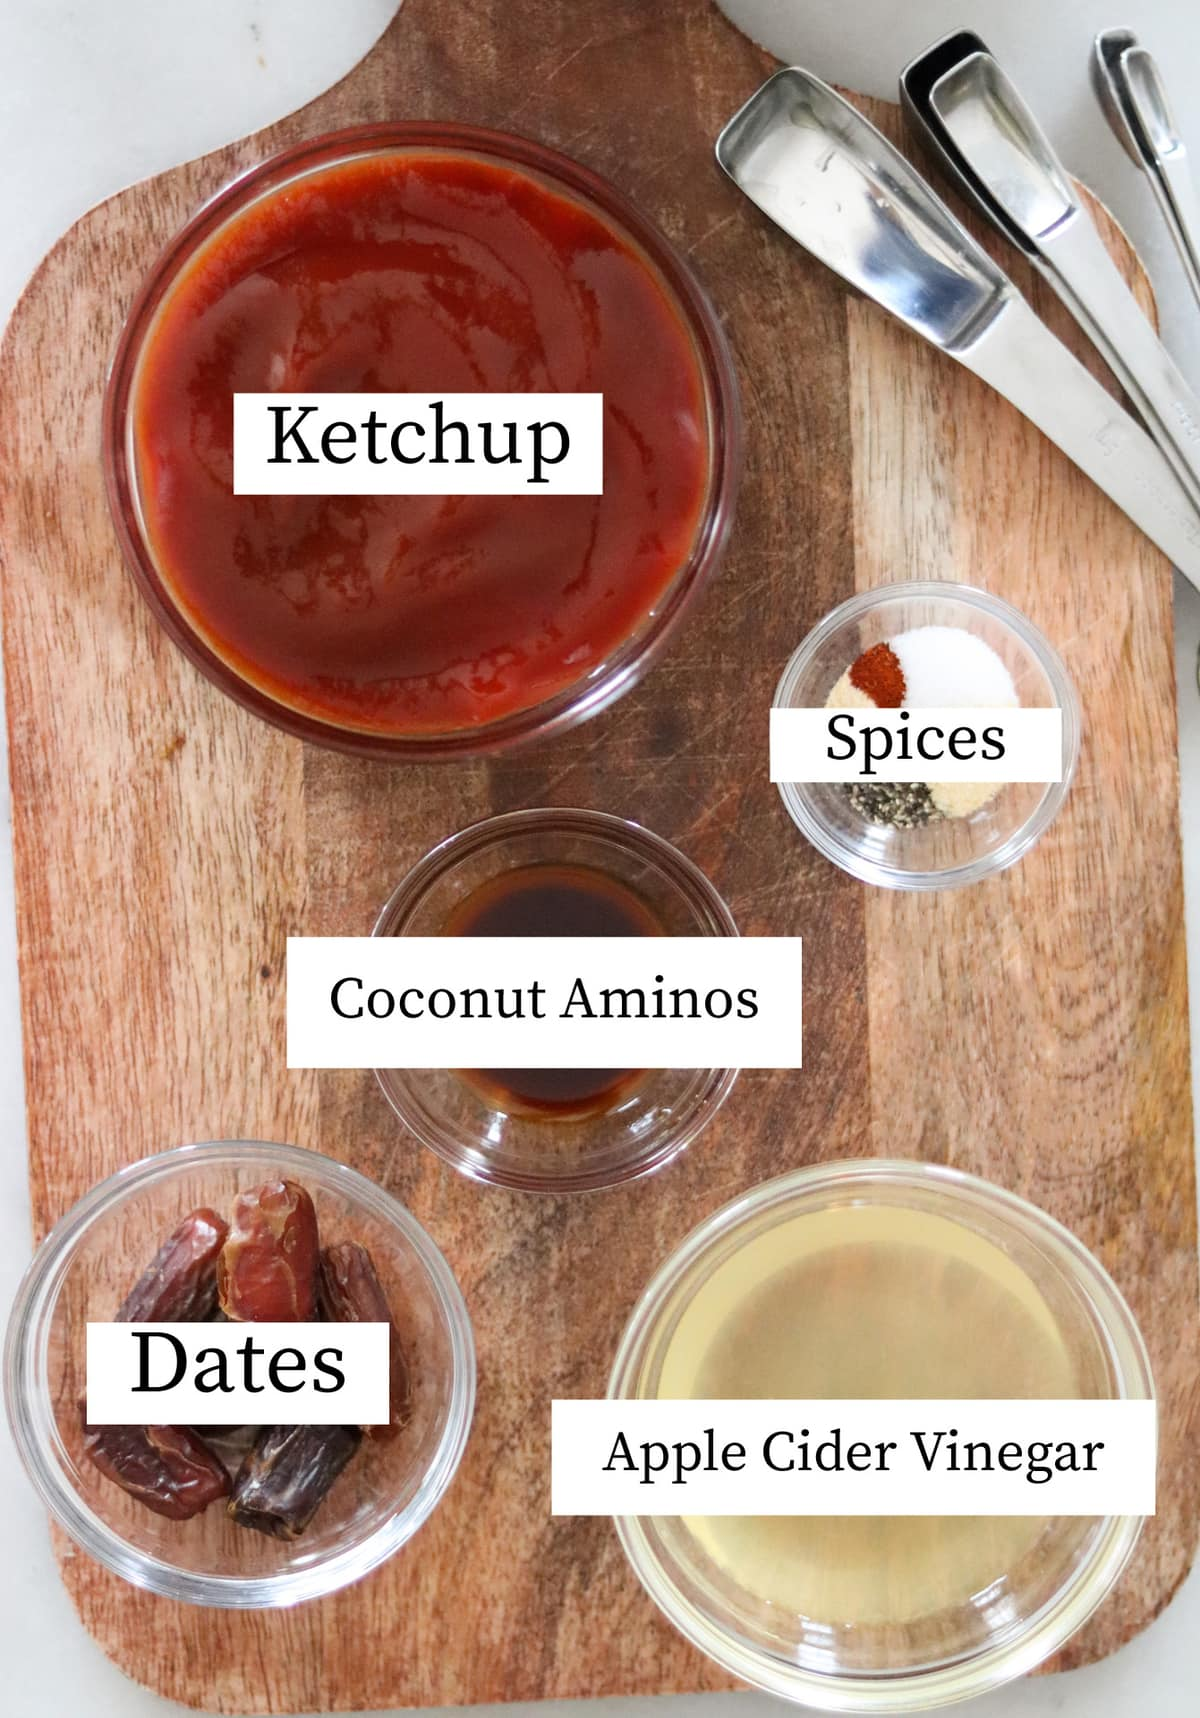 Recipe ingredients in small dishes laid out on a wooden cutting board and labeled: ketchup, spices, coconut aminos, dates, and apple cider vinegar.